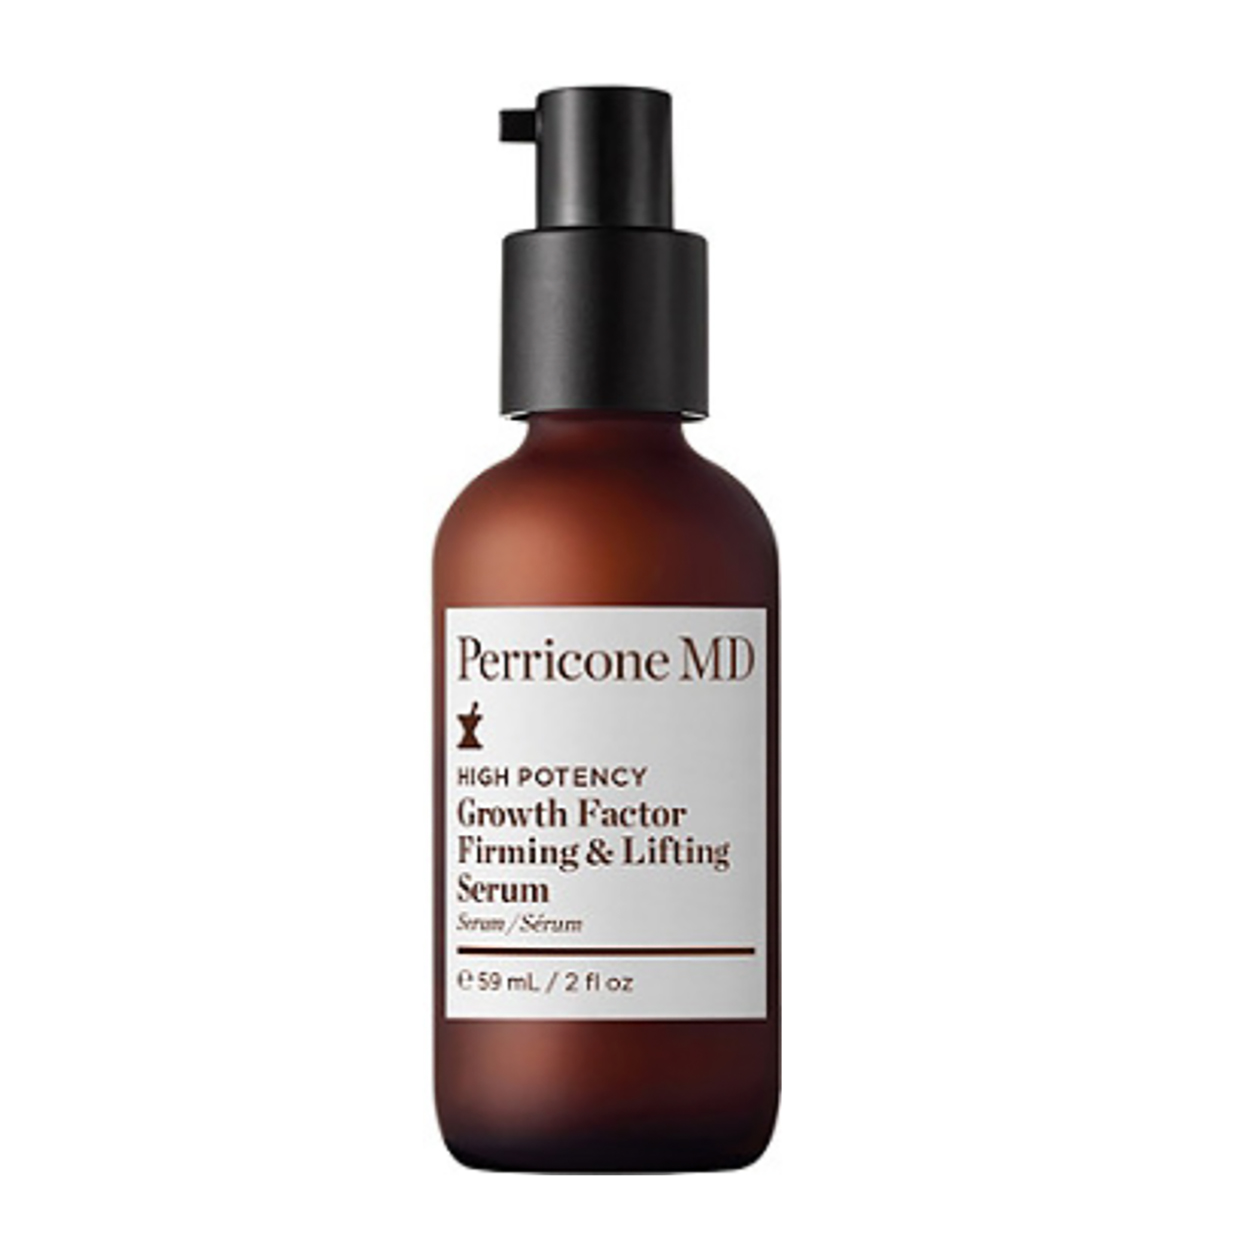 Perricone MD Firming & Lifting Serum